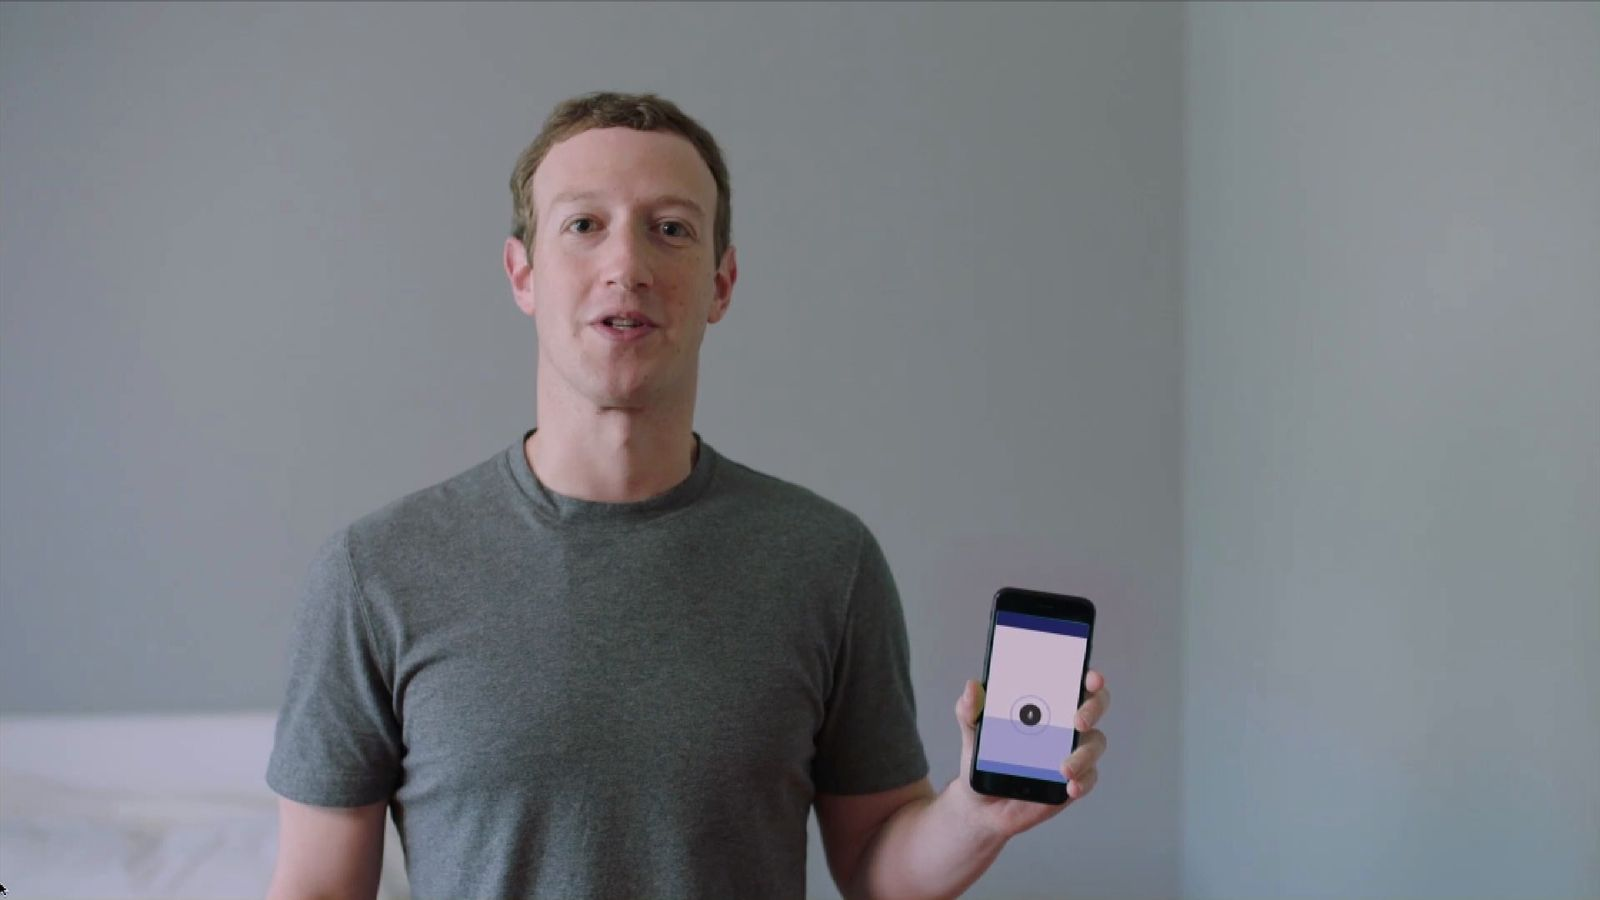 Facebook boss Mark Zuckerberg shows off robot butler 'Jarvis'